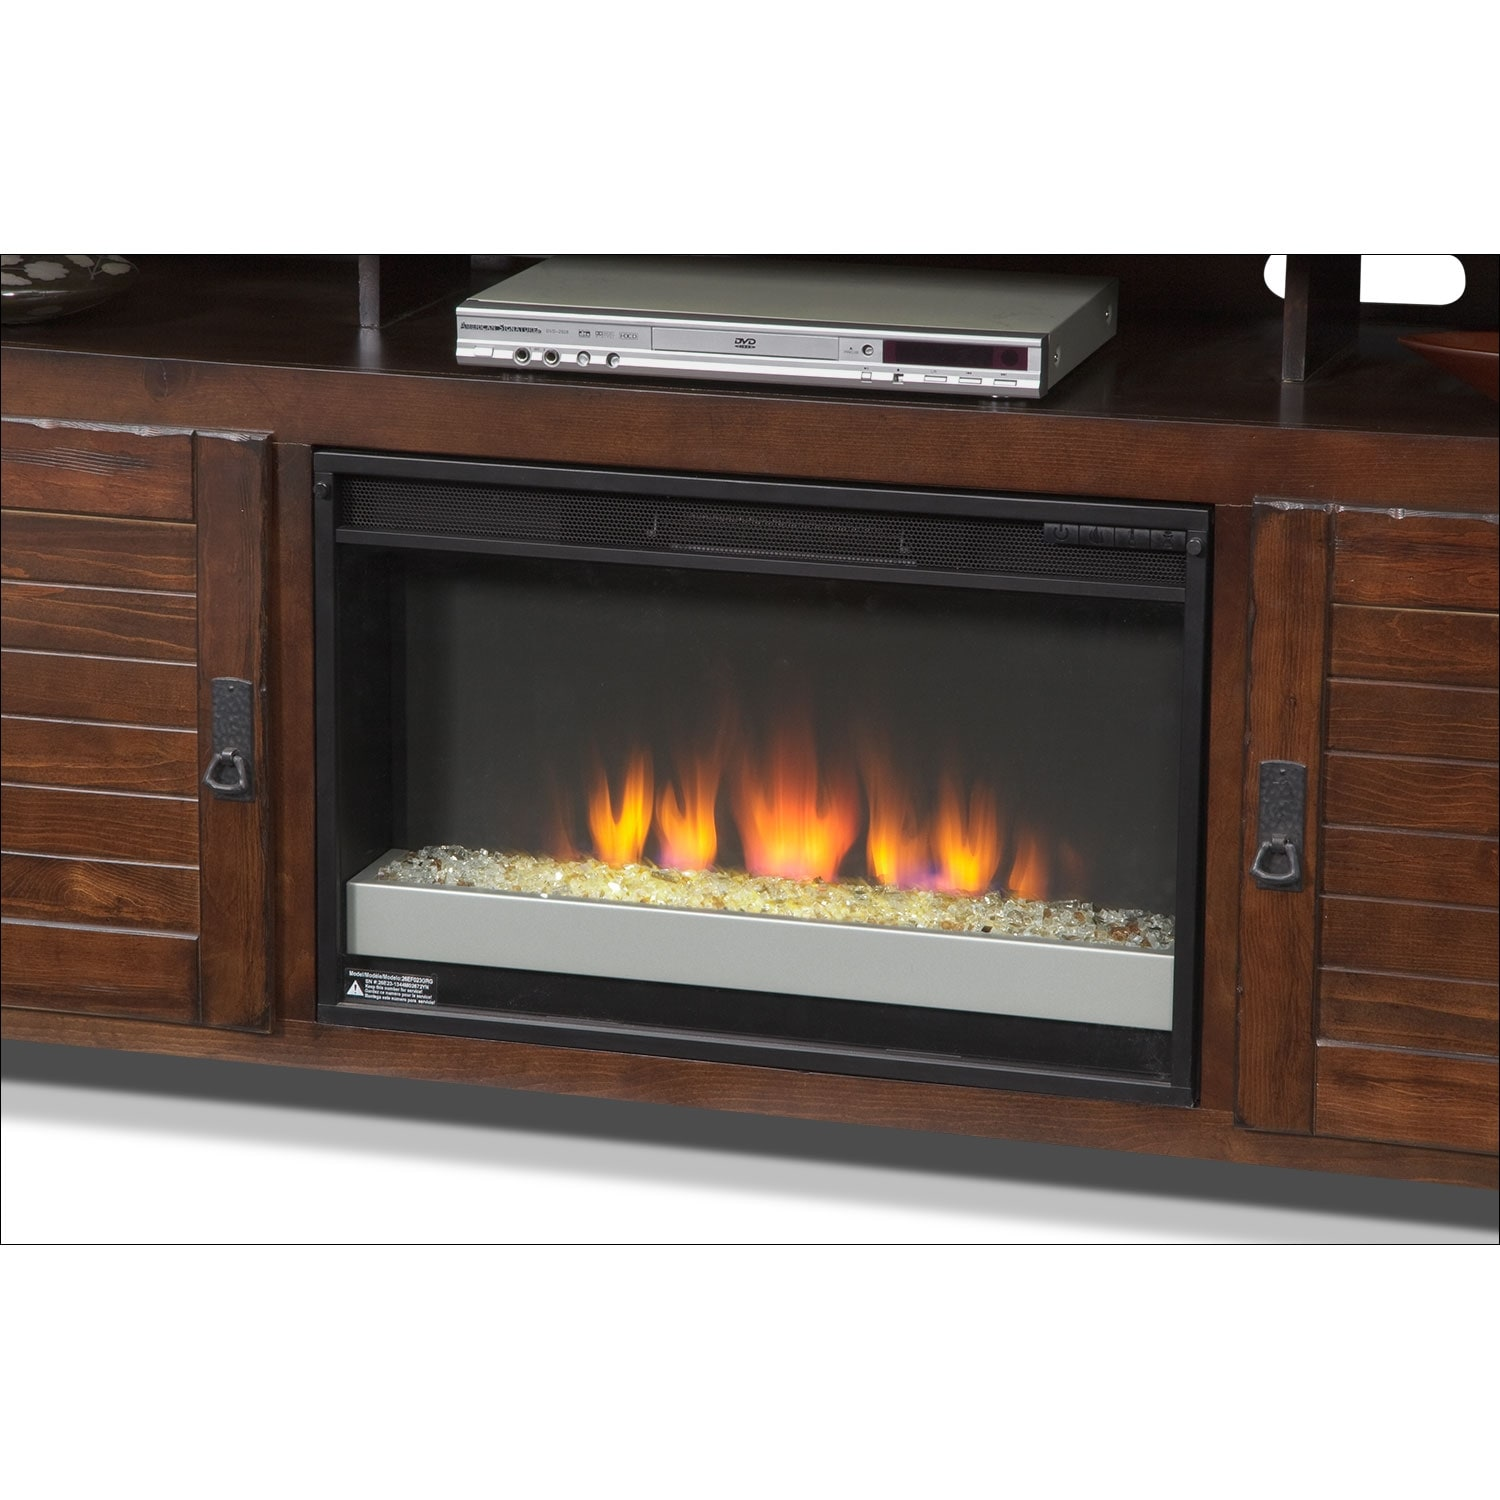 stand inch fireplaces espresso in woodwaves eco console tv fireplace for with stands to floating furniture products bulit geo